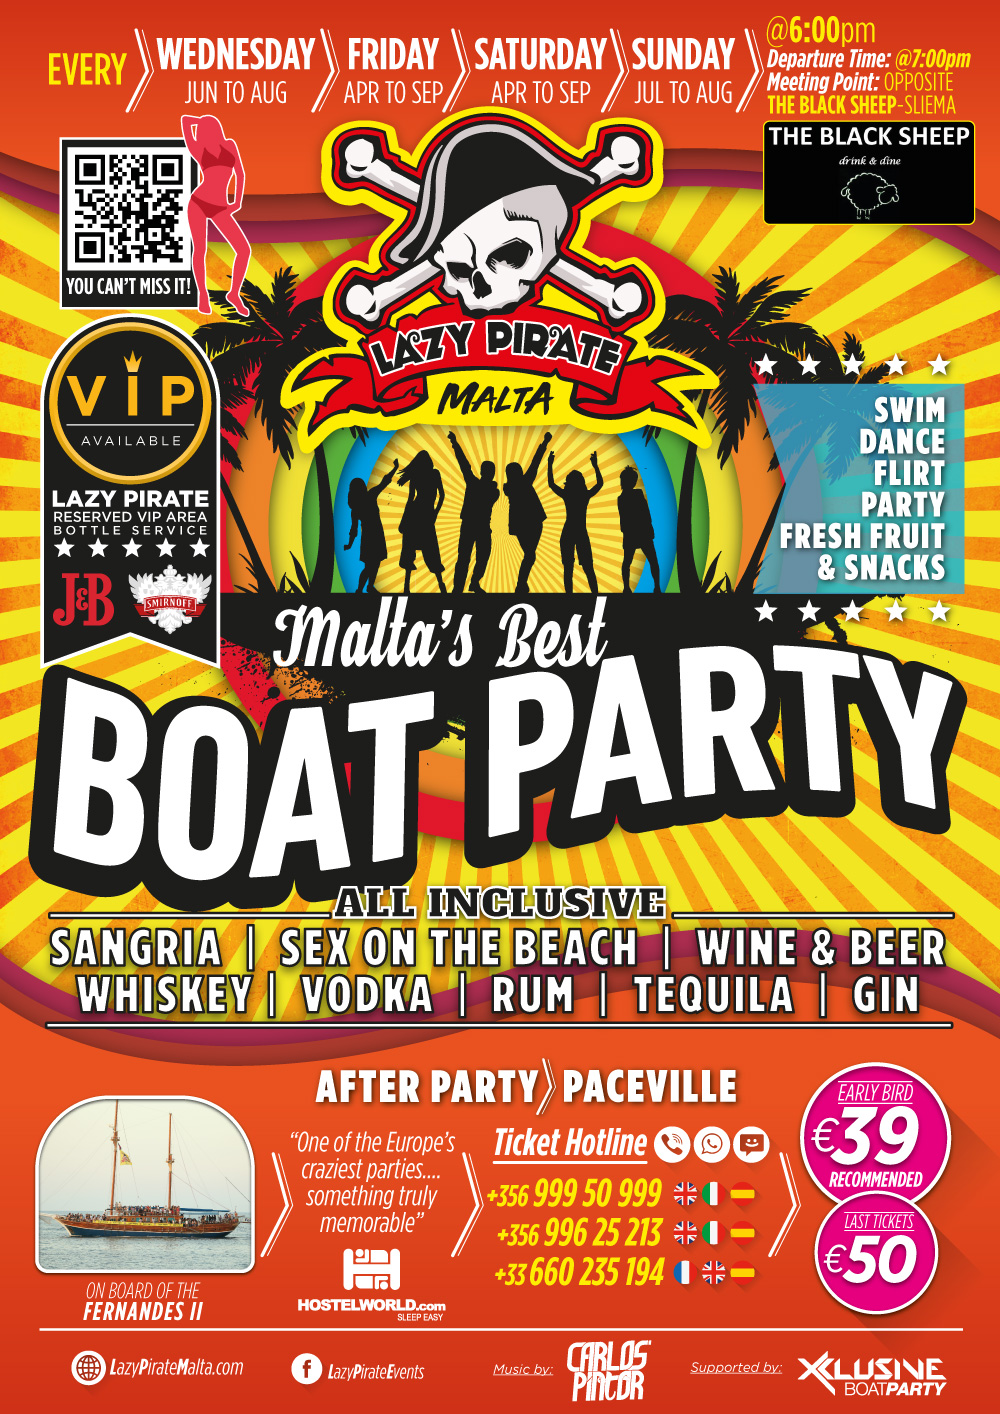 Lazy Pirate Boat Party Malta 2019